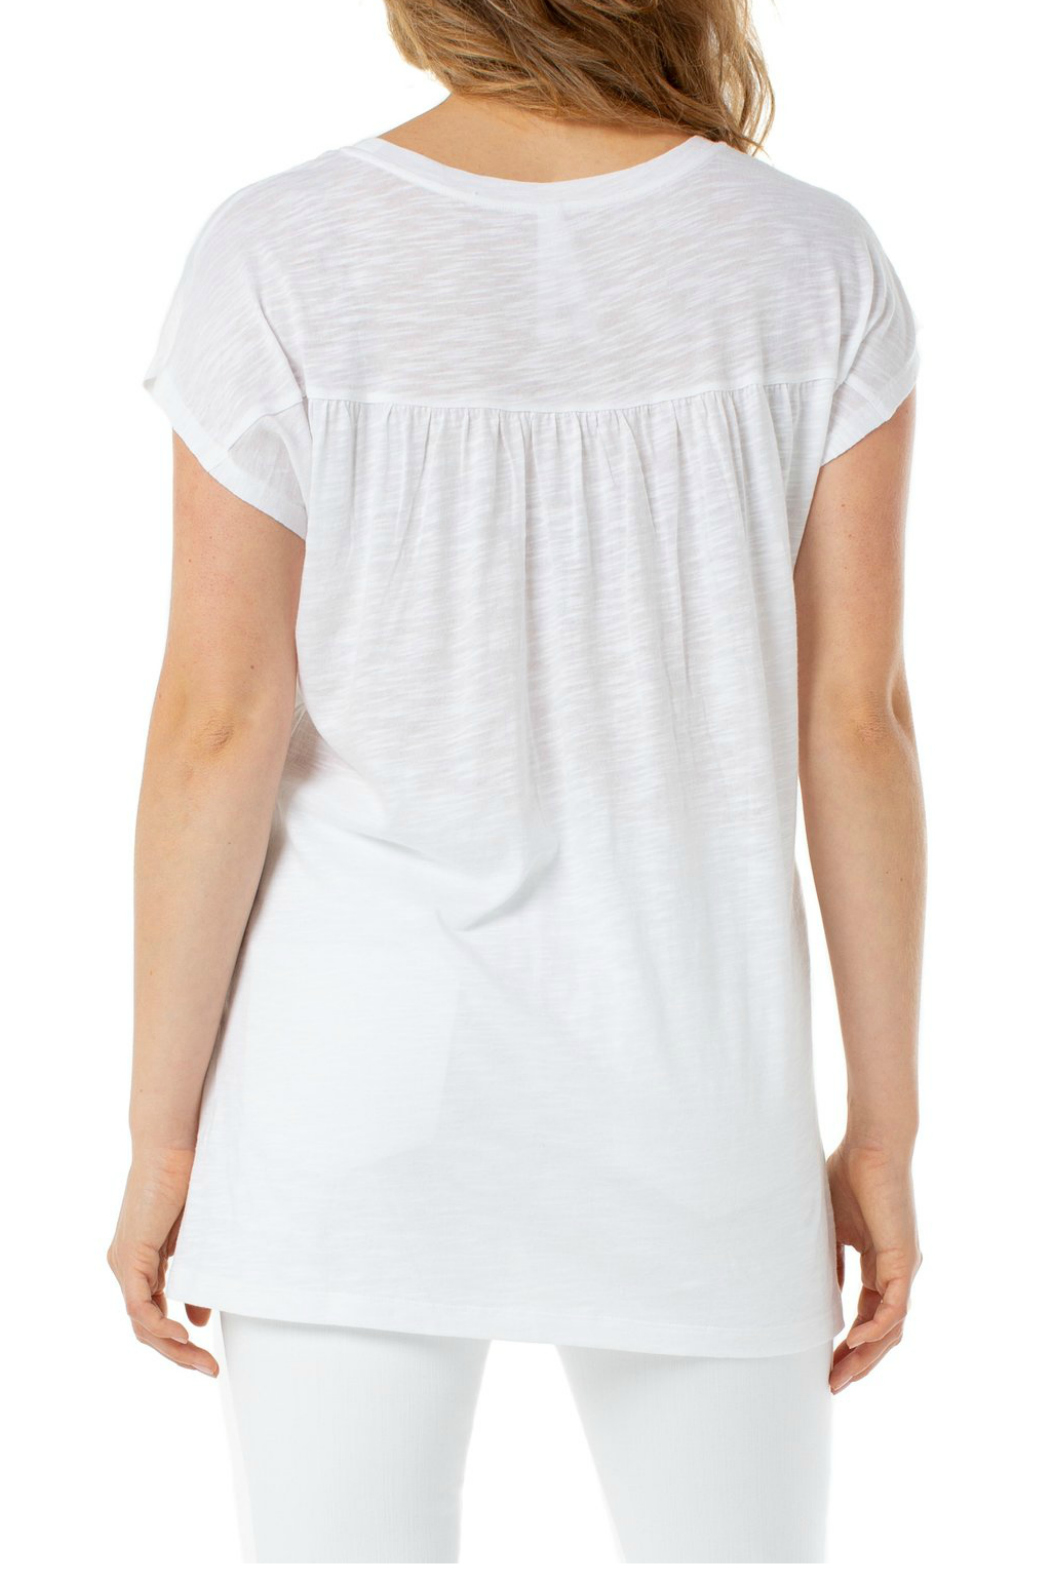 Liverpool  SCOOP NECK CAP SLEEVE DOLMAN - Side Cropped Image